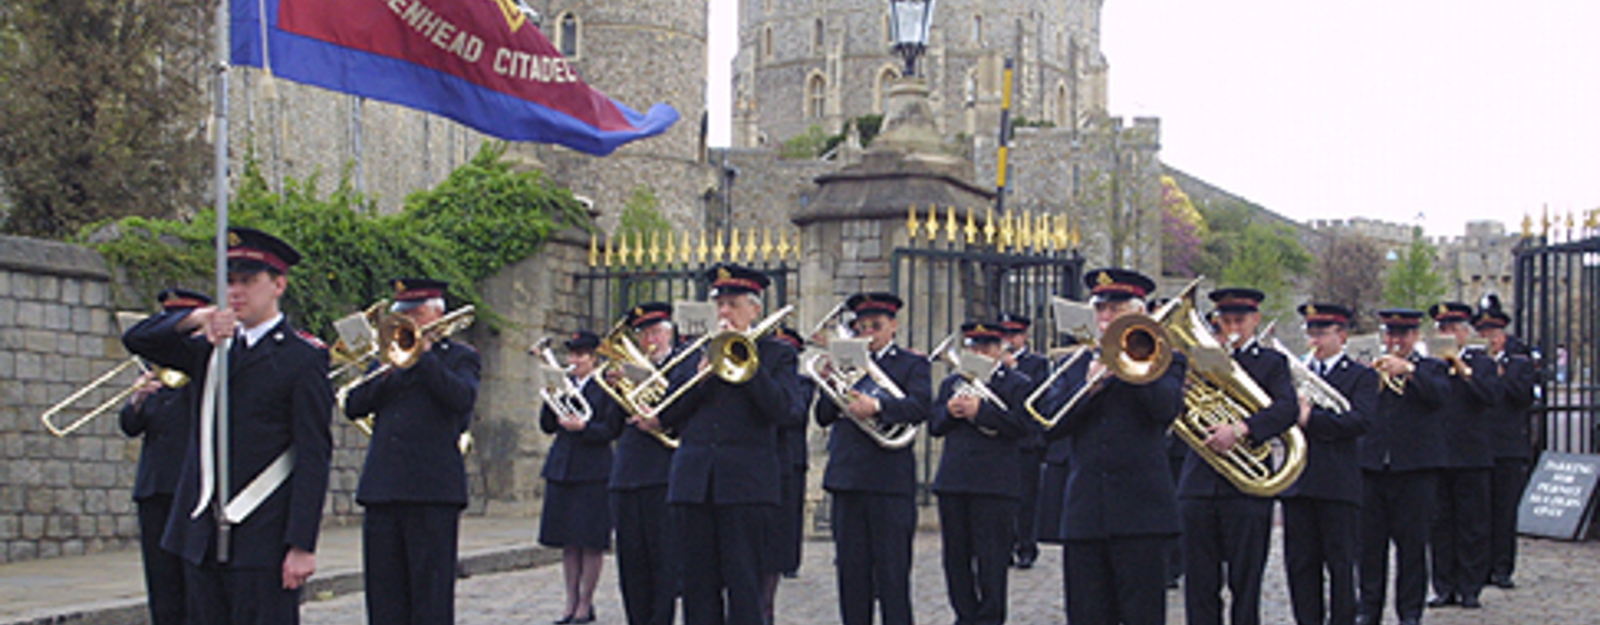 Maidenhead Citadel Band of The Salvation Army at Windsor Castle